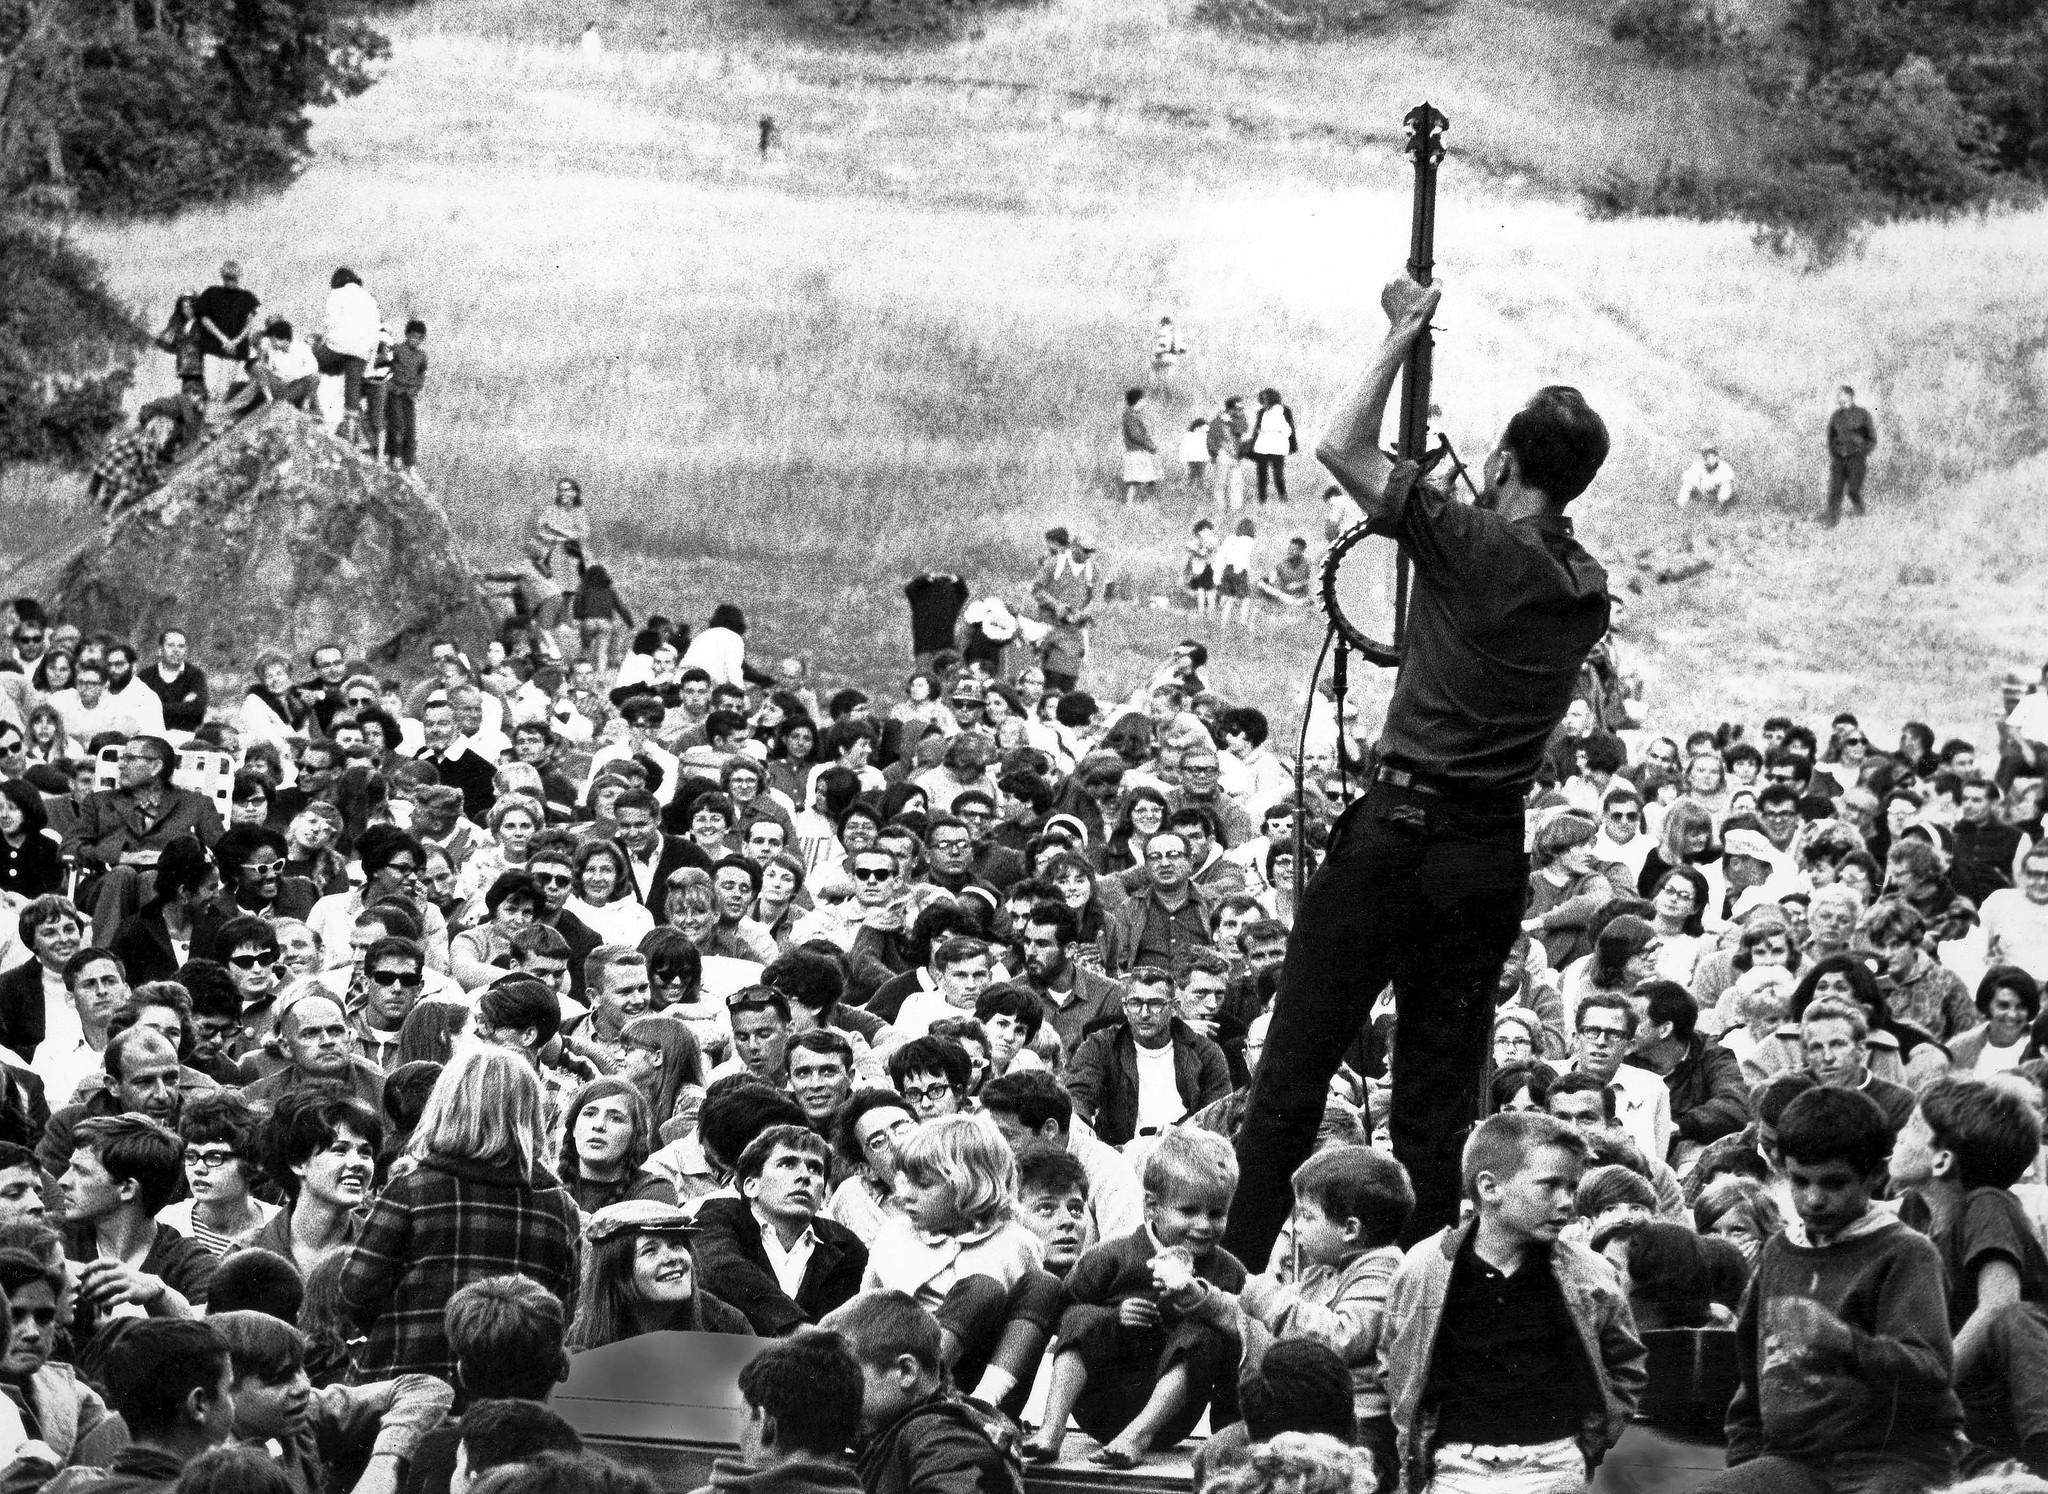 Woody Guthrie - Pete Seeger The First Rays Of The Protest In The Twentieth Century